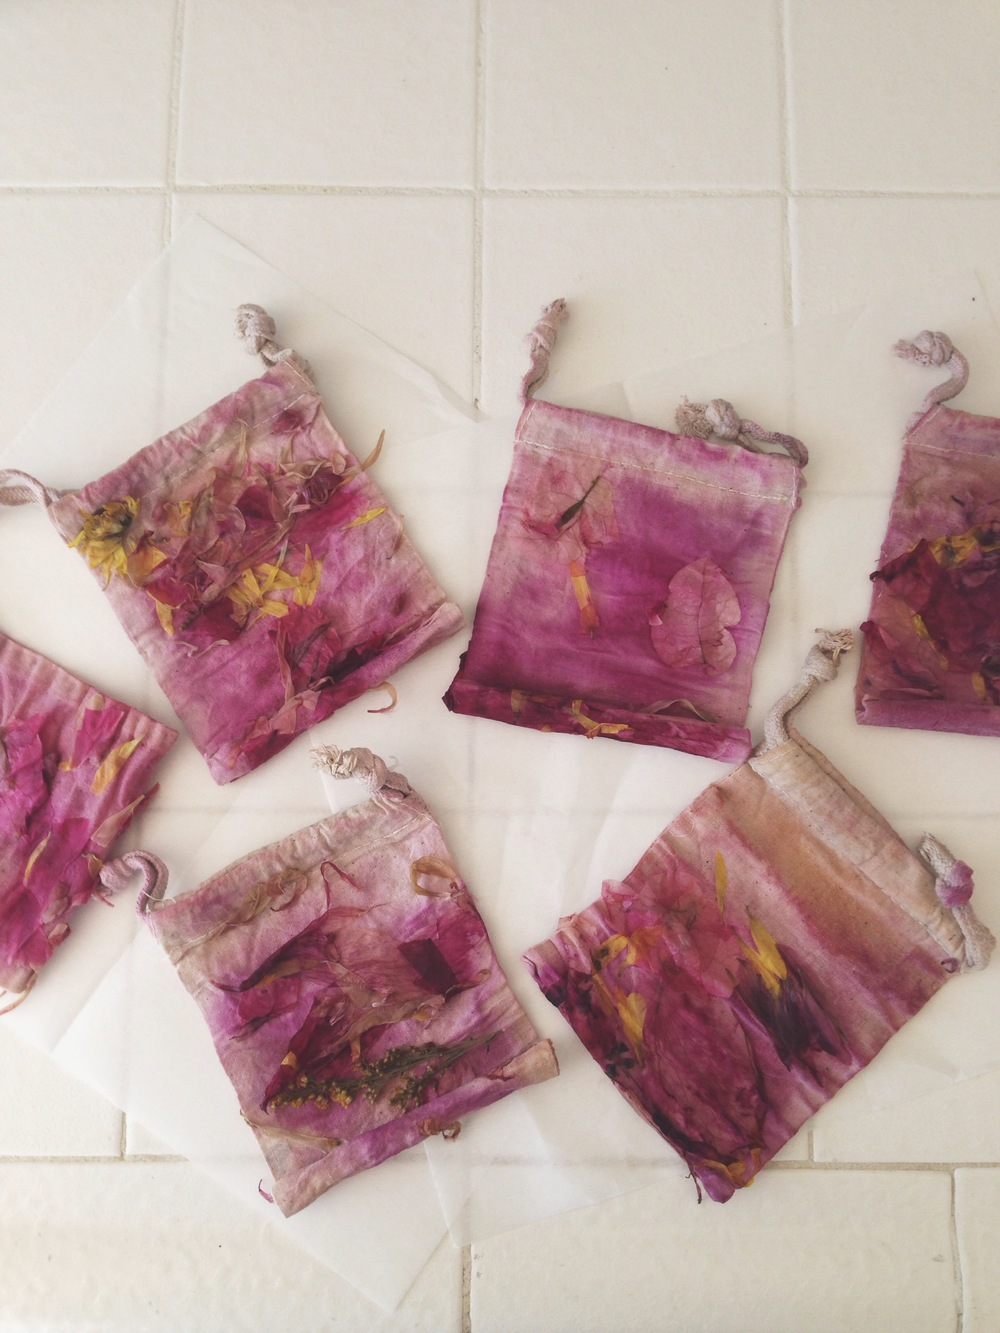 Fabric Dyeing with Flowers - Aquarian Soul